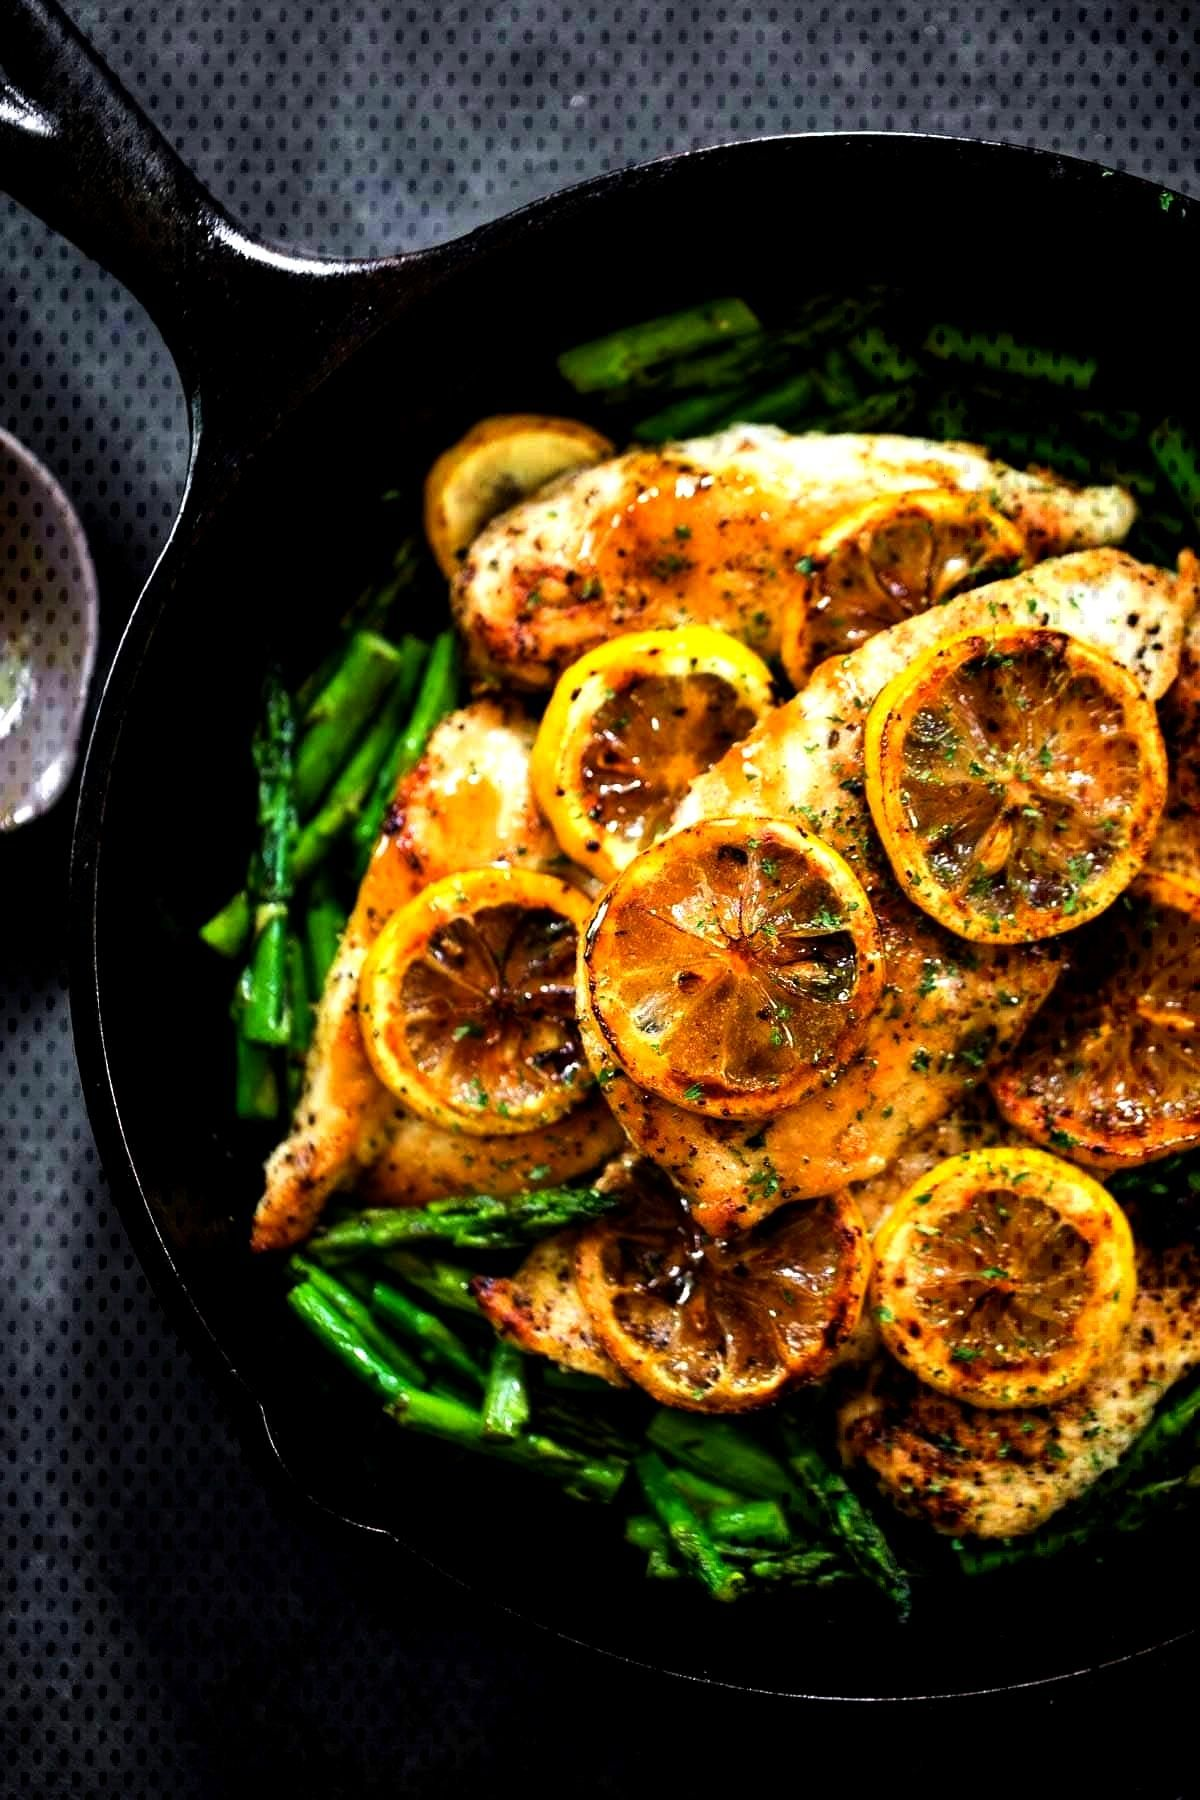 5 Ingredient Lemon Chicken with Asparagus is a bright, fresh, healthy dinner that comes together in